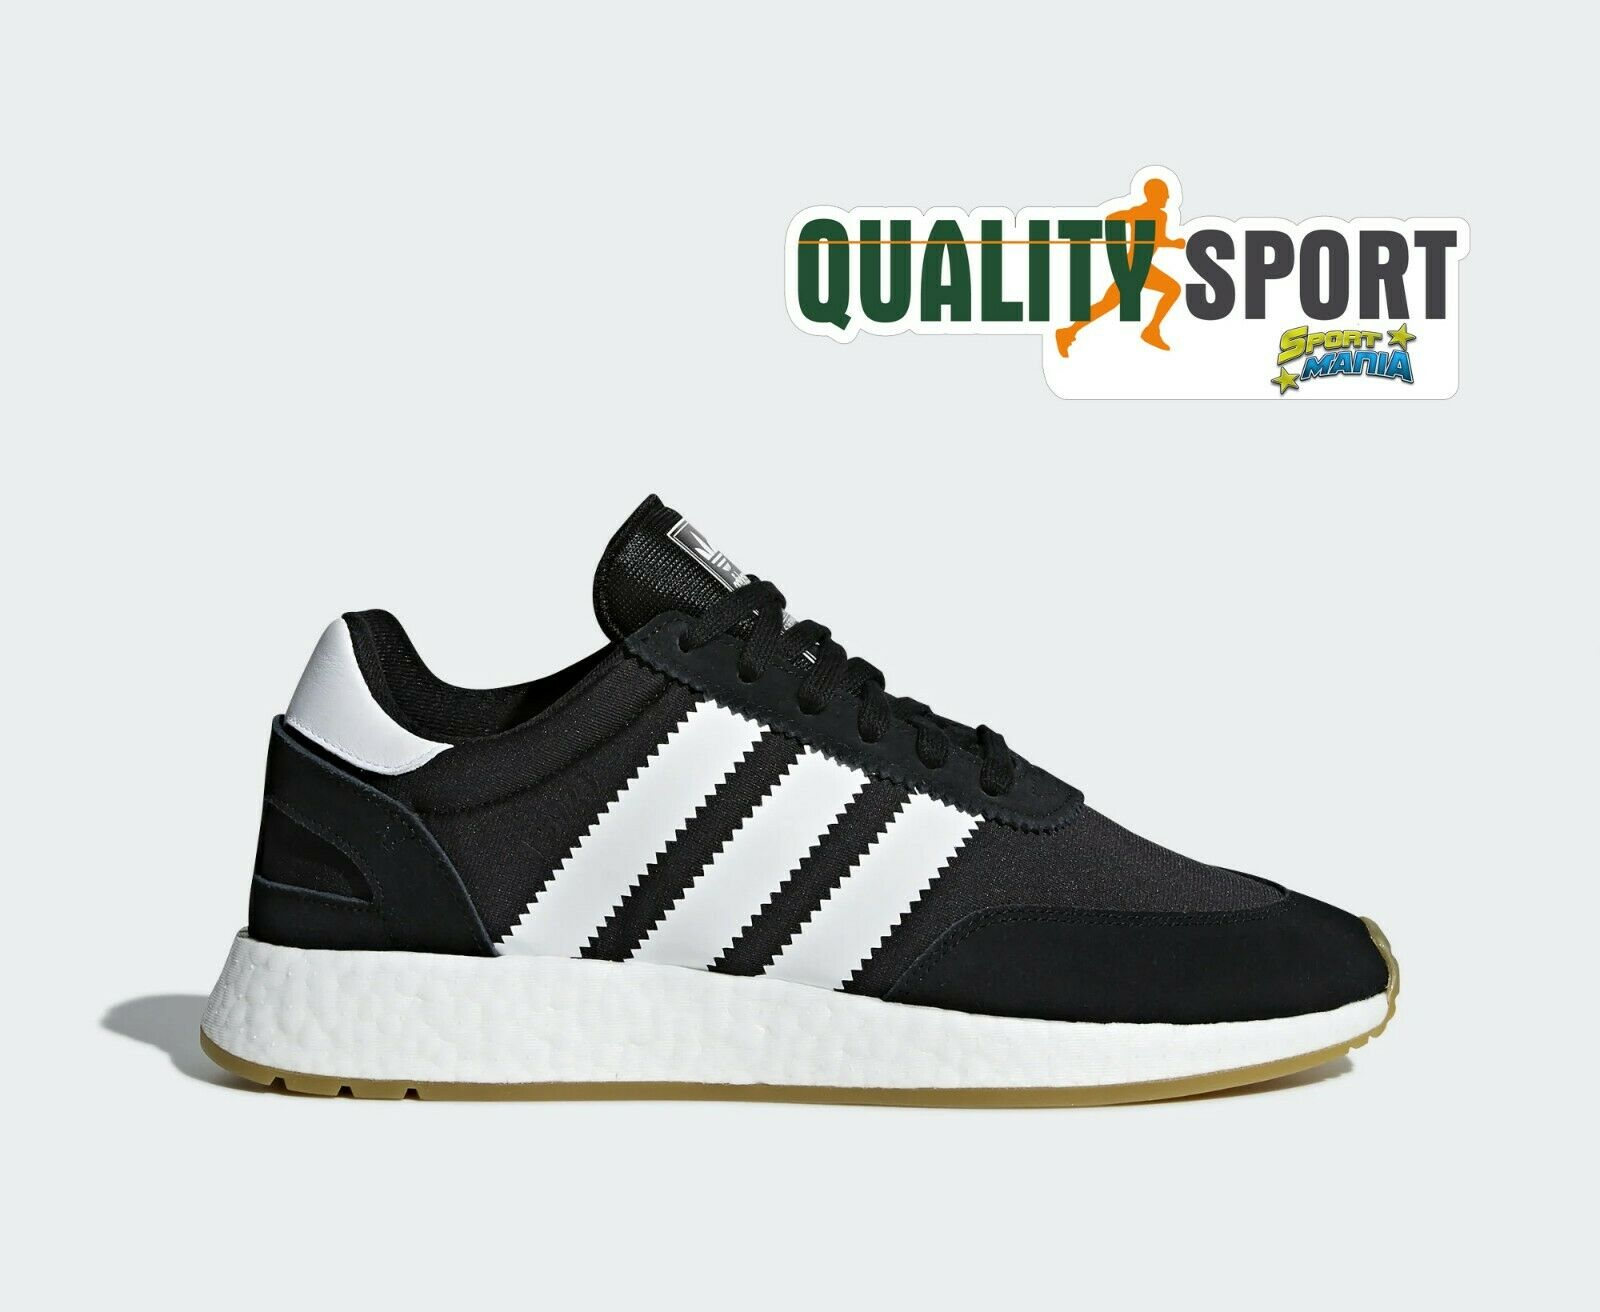 Adidas I-5923 Boost black Bianco shoes shoes men Sportive Sneakers D97344 2019